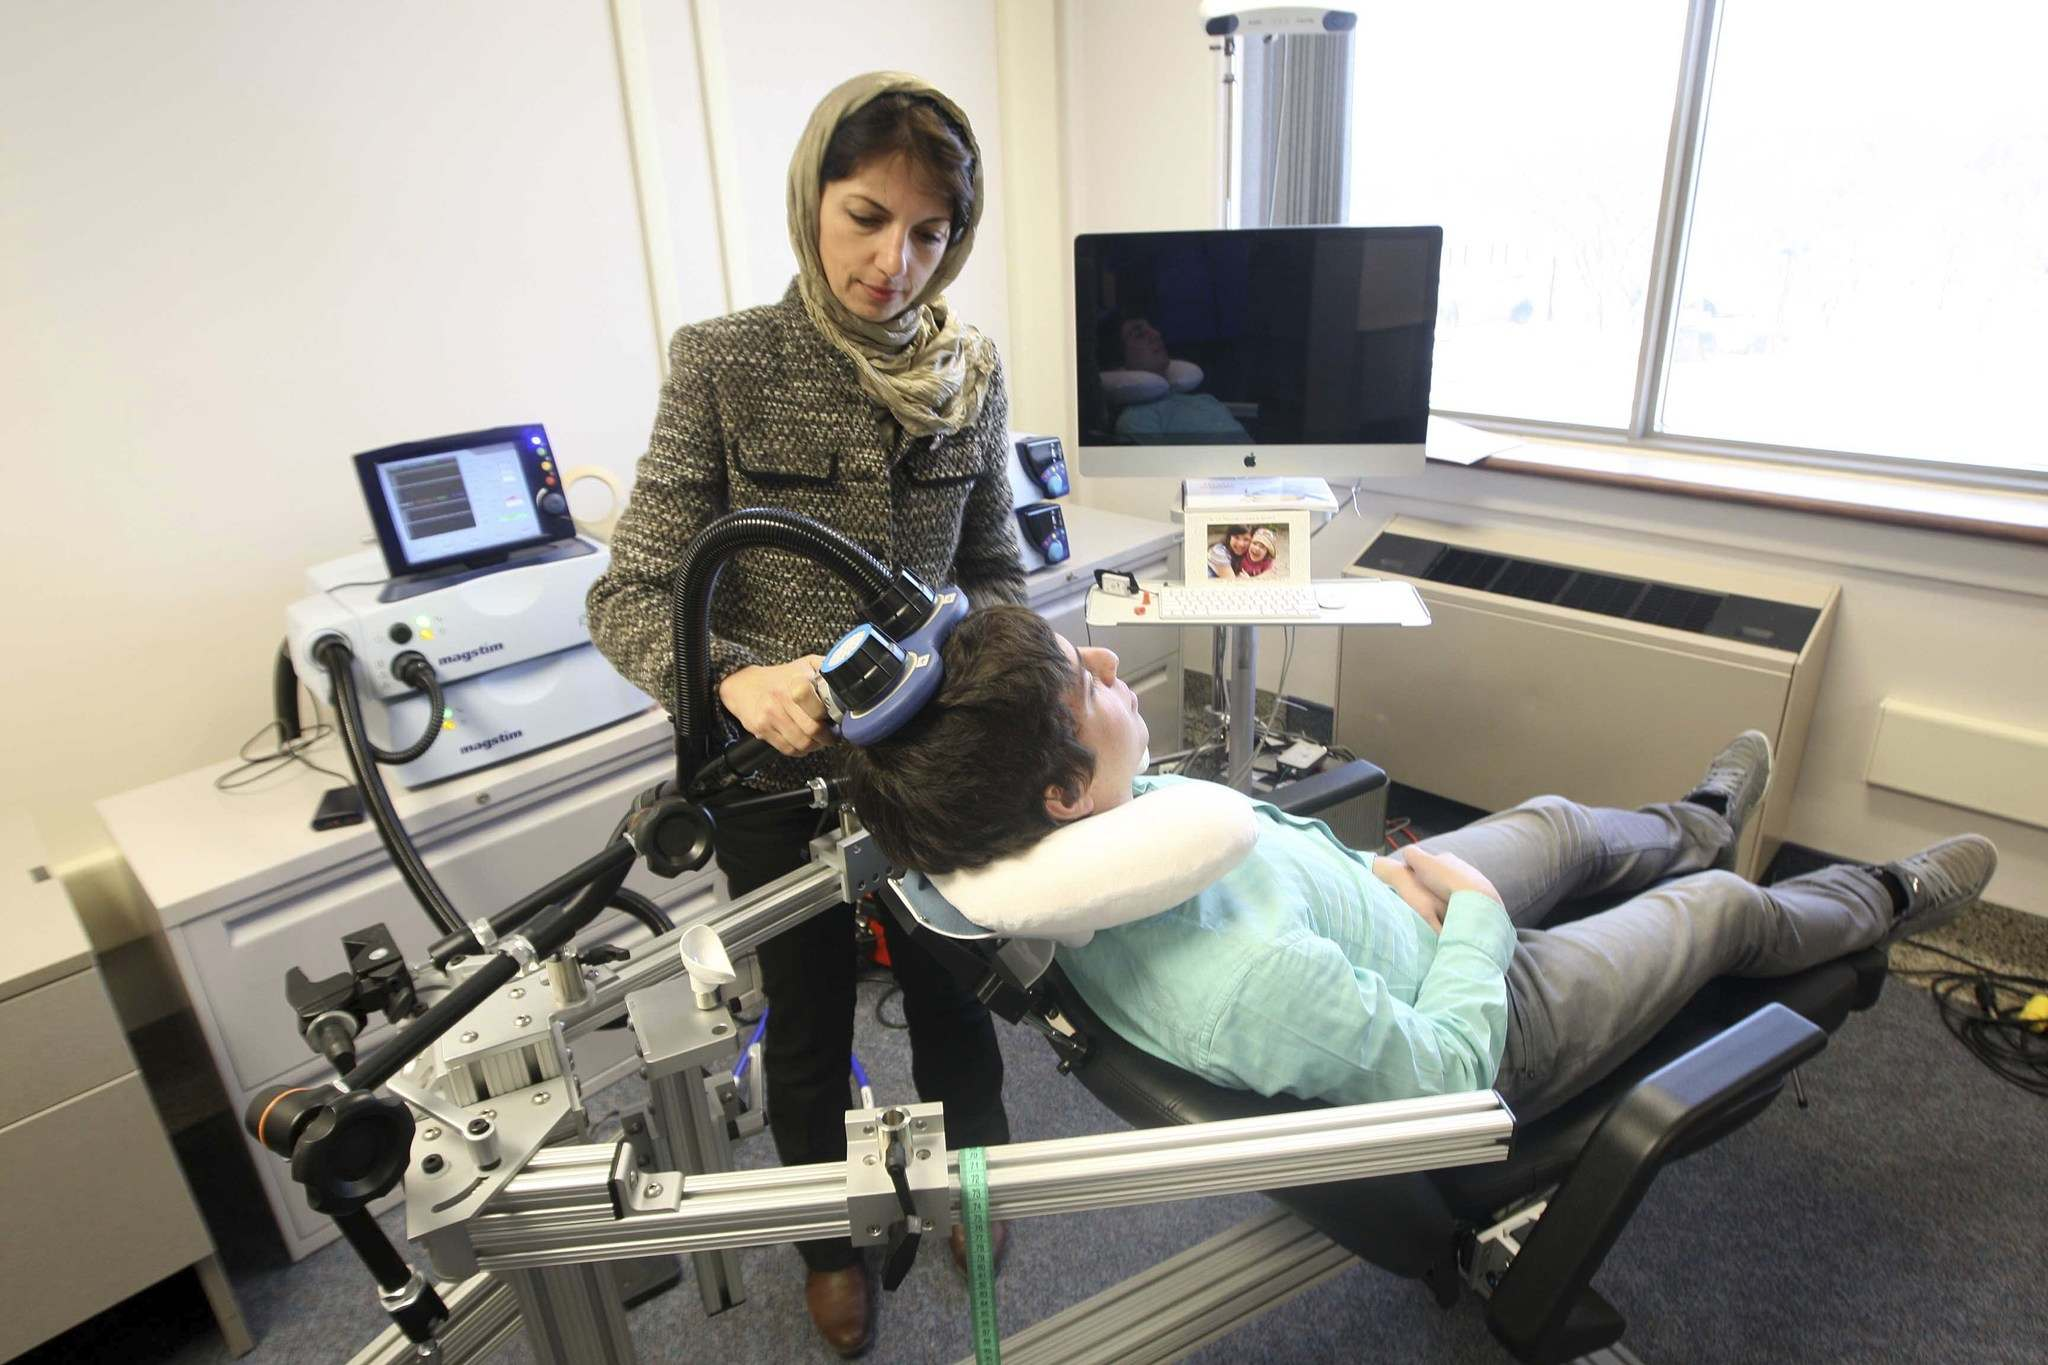 JOE BRYKSA / WINNIPEG FREE PRESS FILES</p><p>In this 2013 photo, Dr Zahra Moussavi shows Repetitive Transcranial Magnetic Stimulus machine used to help patients with early stages of Alzheimer&rsquo;s disease.</p>